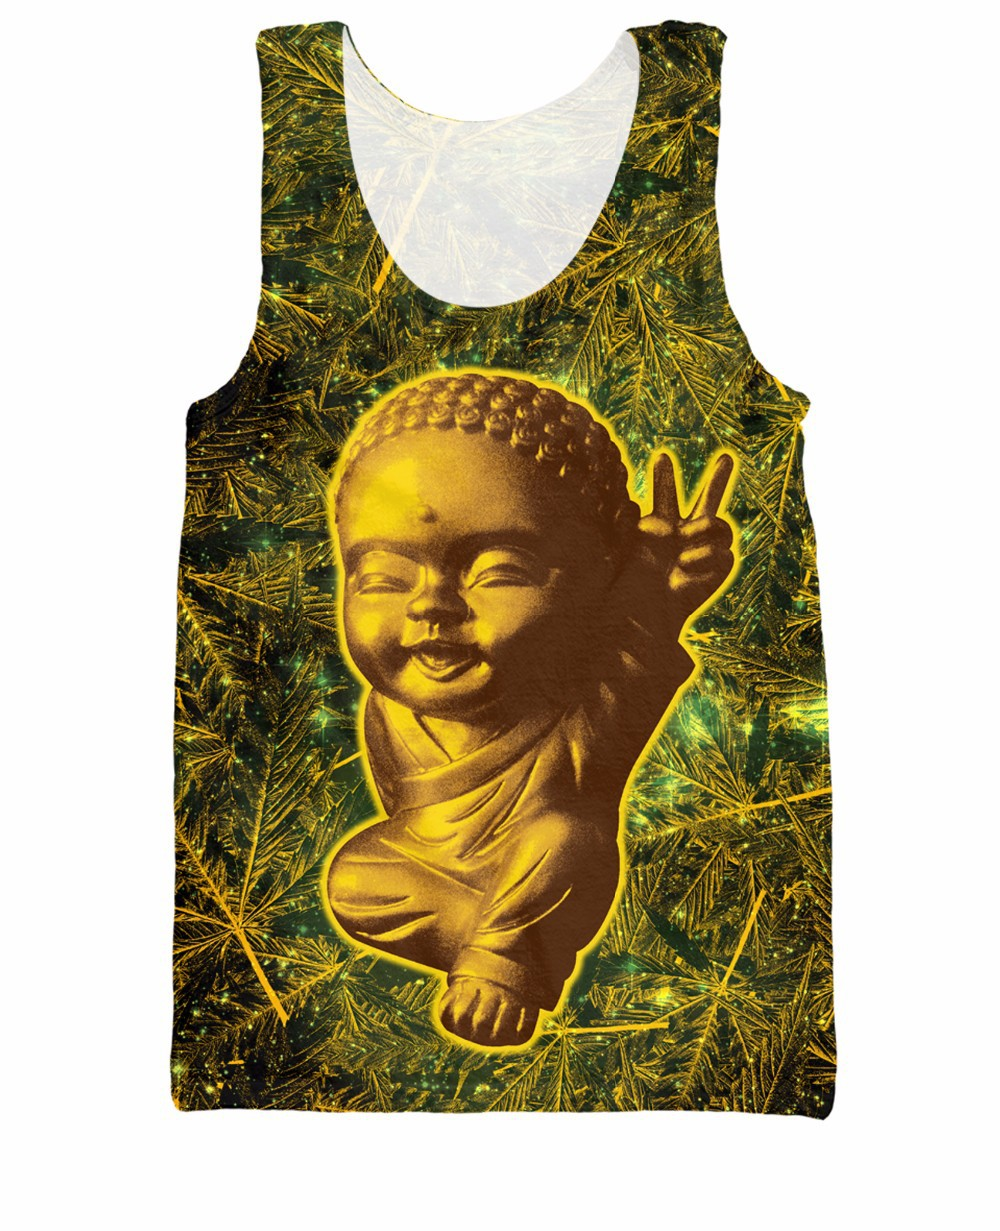 stay-gold-420-buddha-tank-top